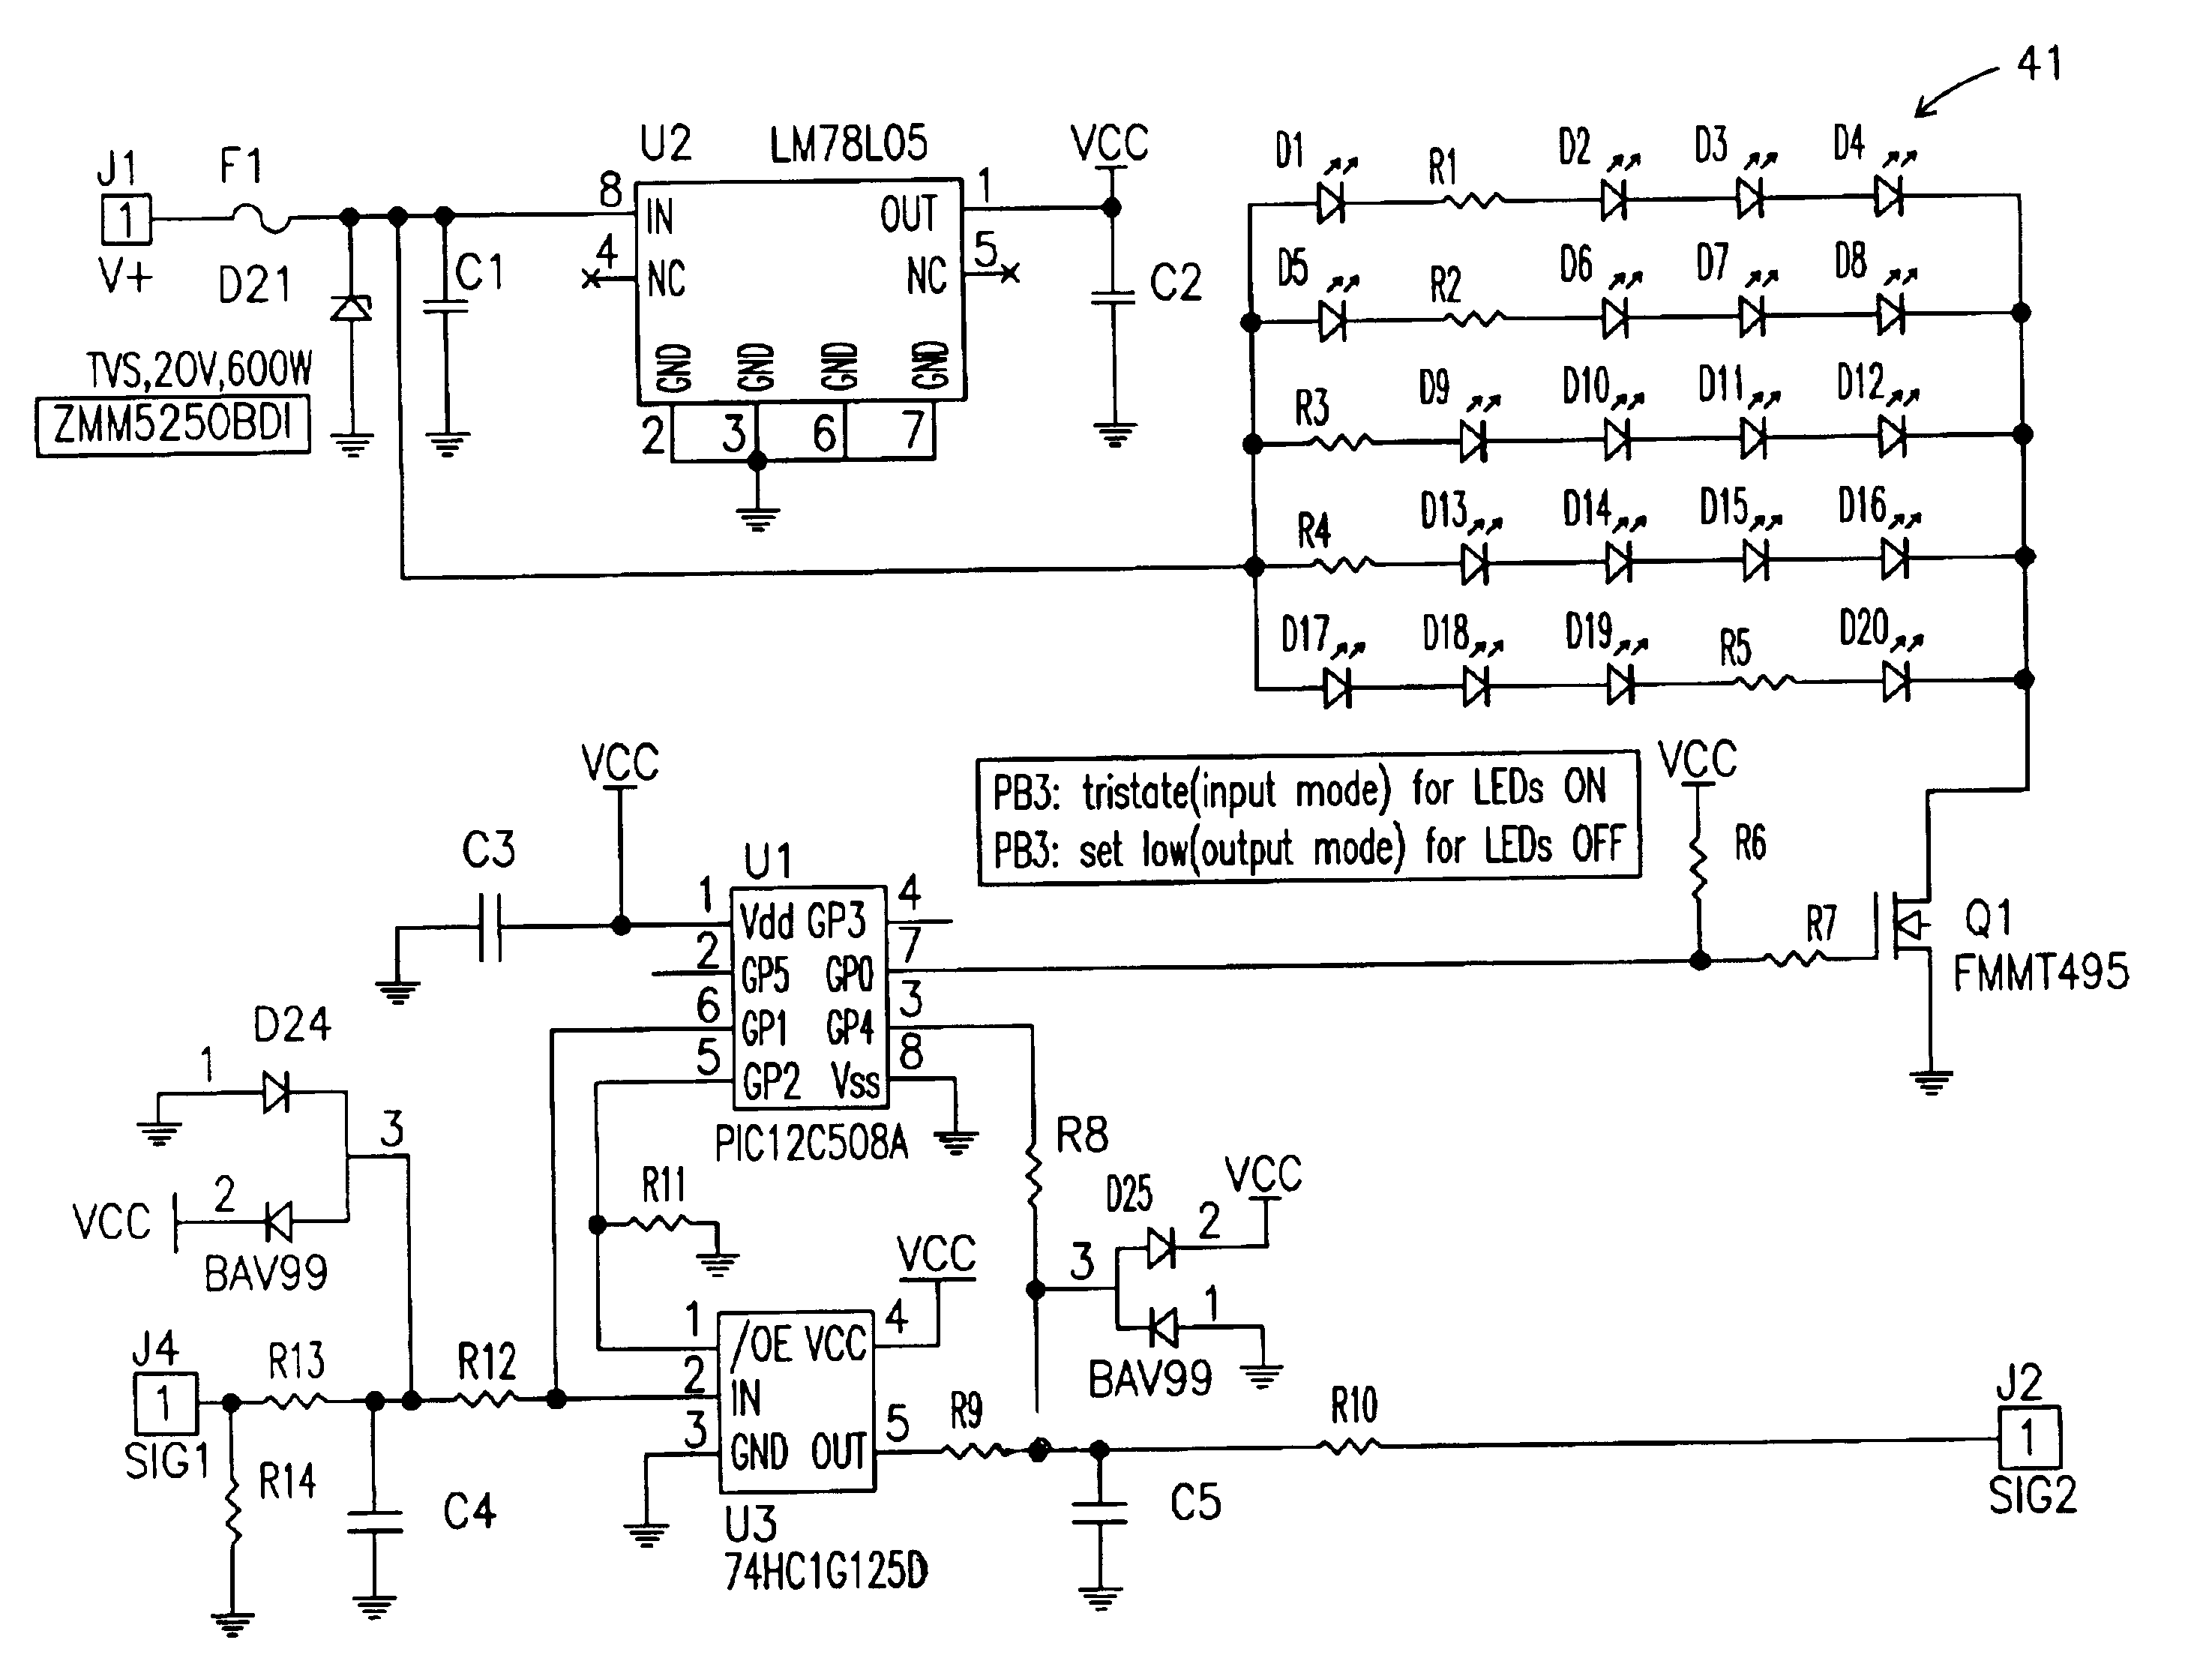 ls12 wiring diagram 10 manualuniverse co \u2022 light switch wiring diagram ls12 wiring diagram 15 17 sg dbd de u2022 rh 15 17 sg dbd de cerwin